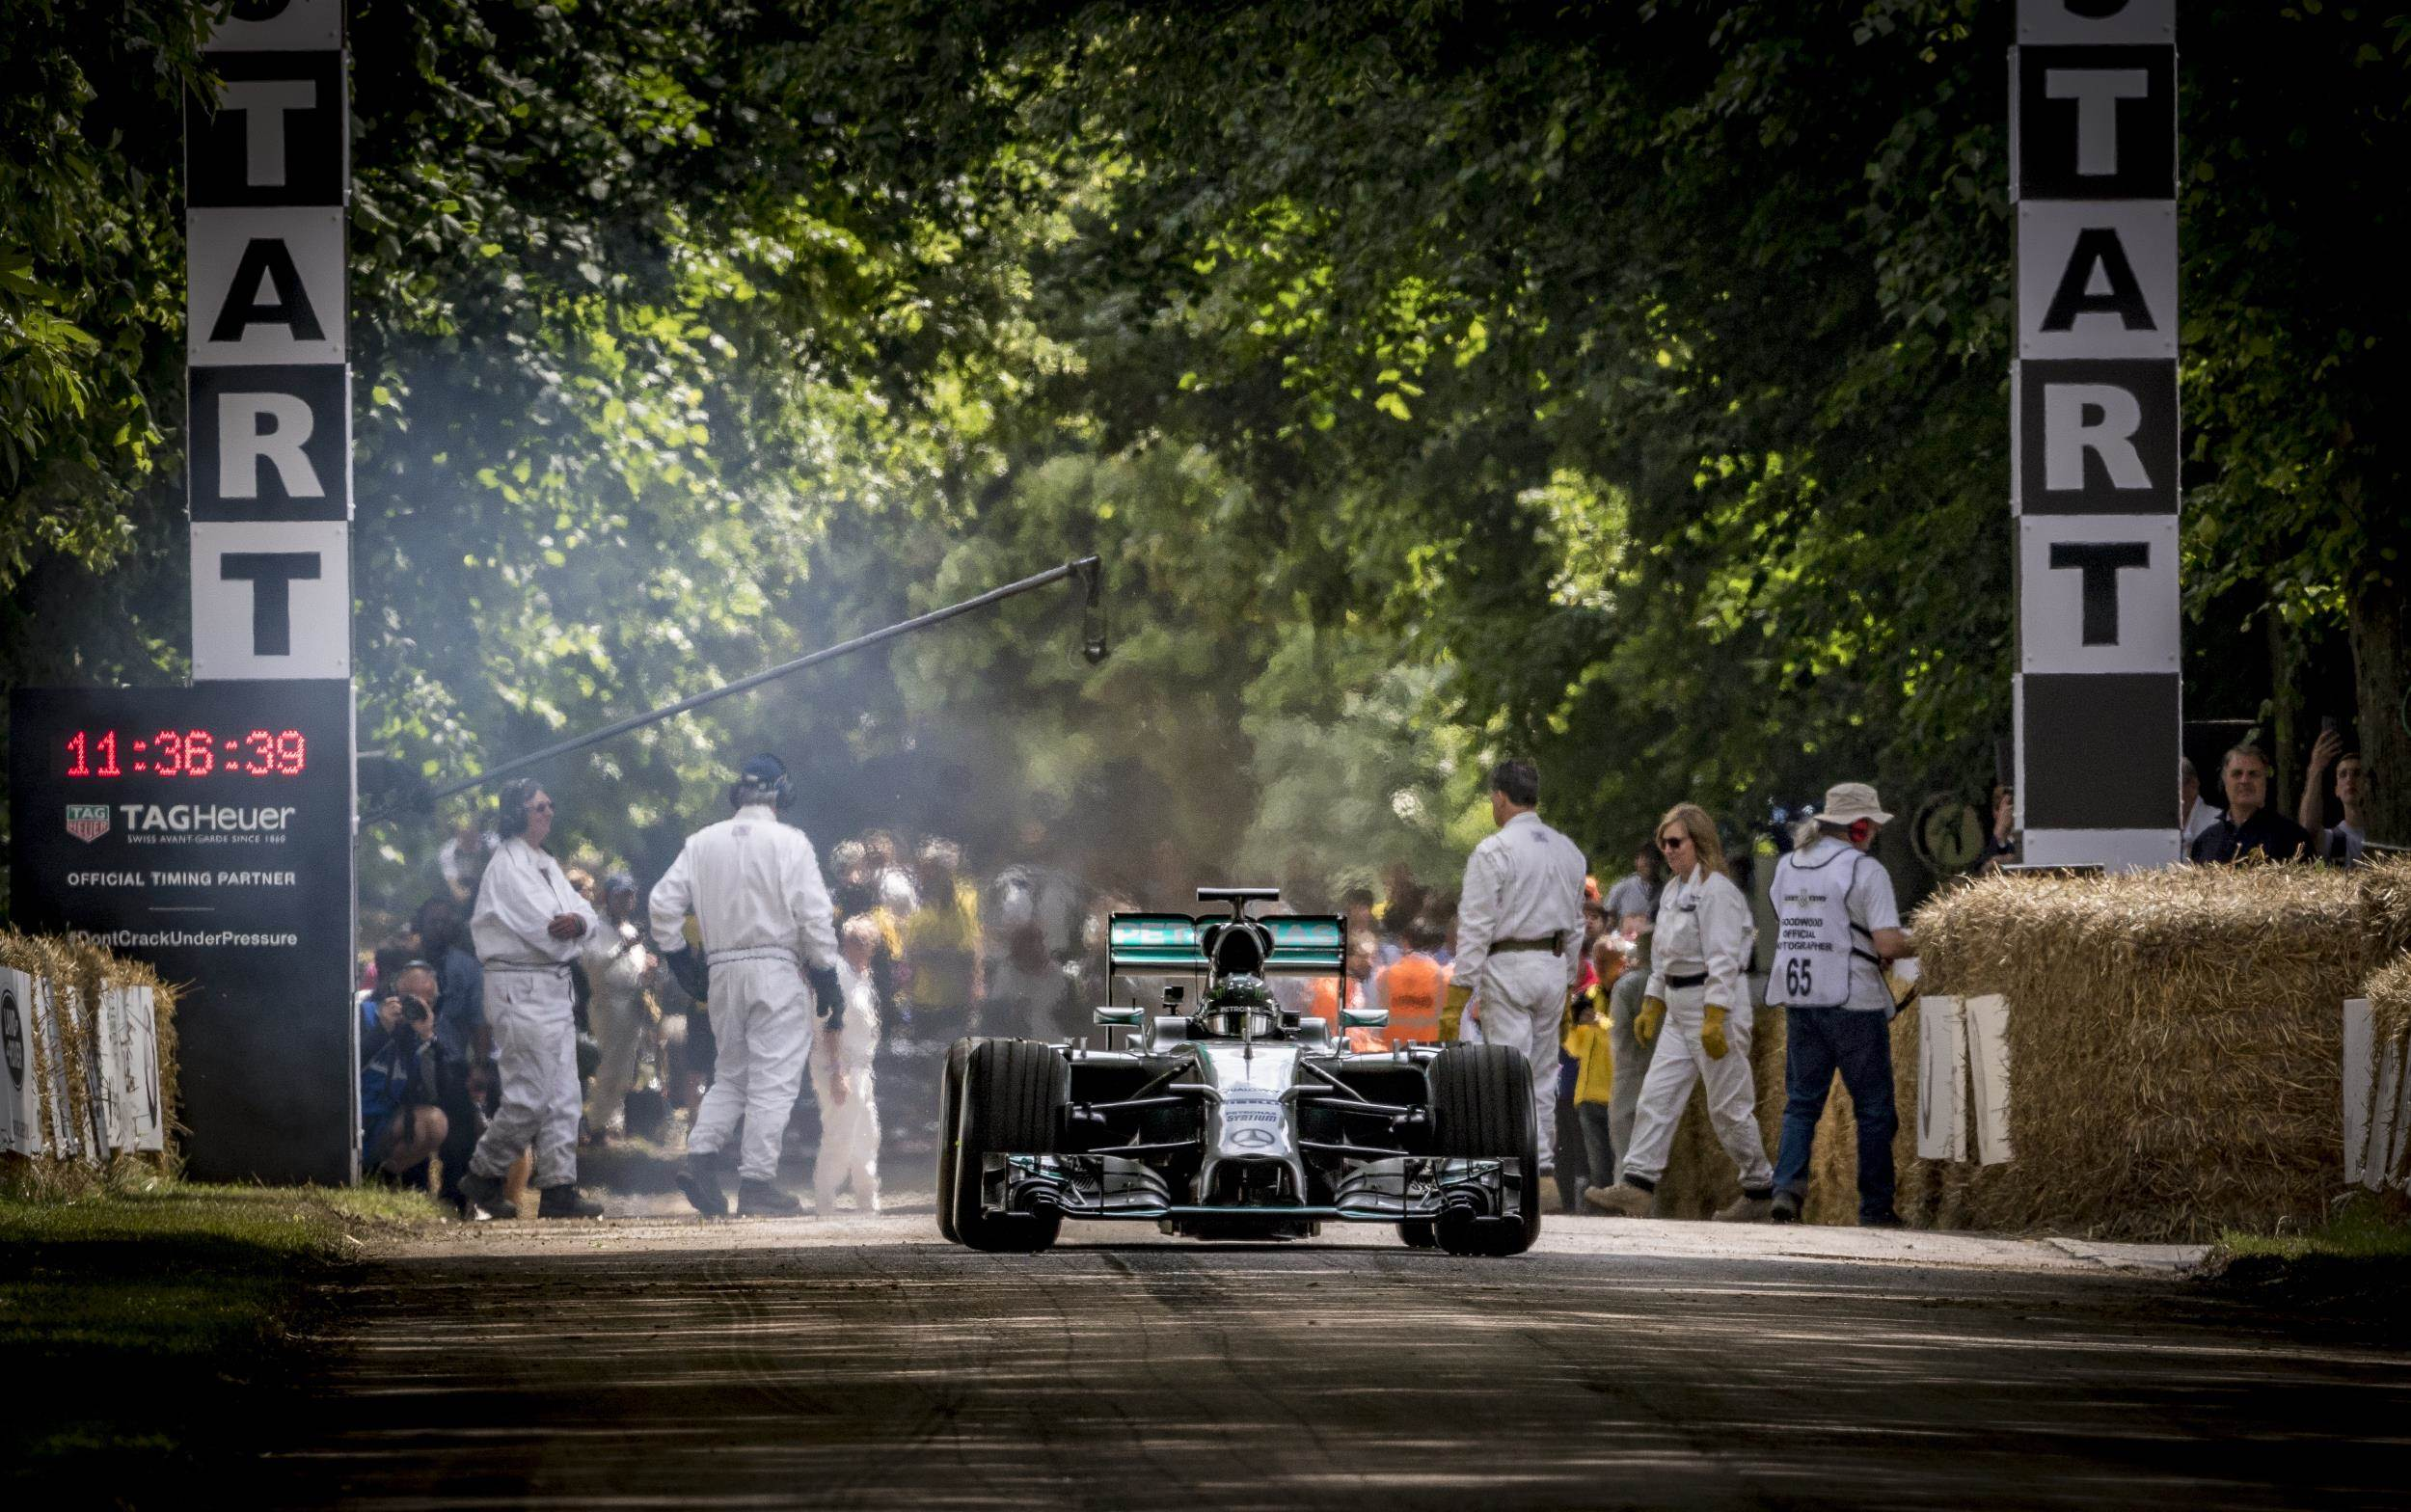 image of a mercedes-benz amg formula one car at goodward festival of speed